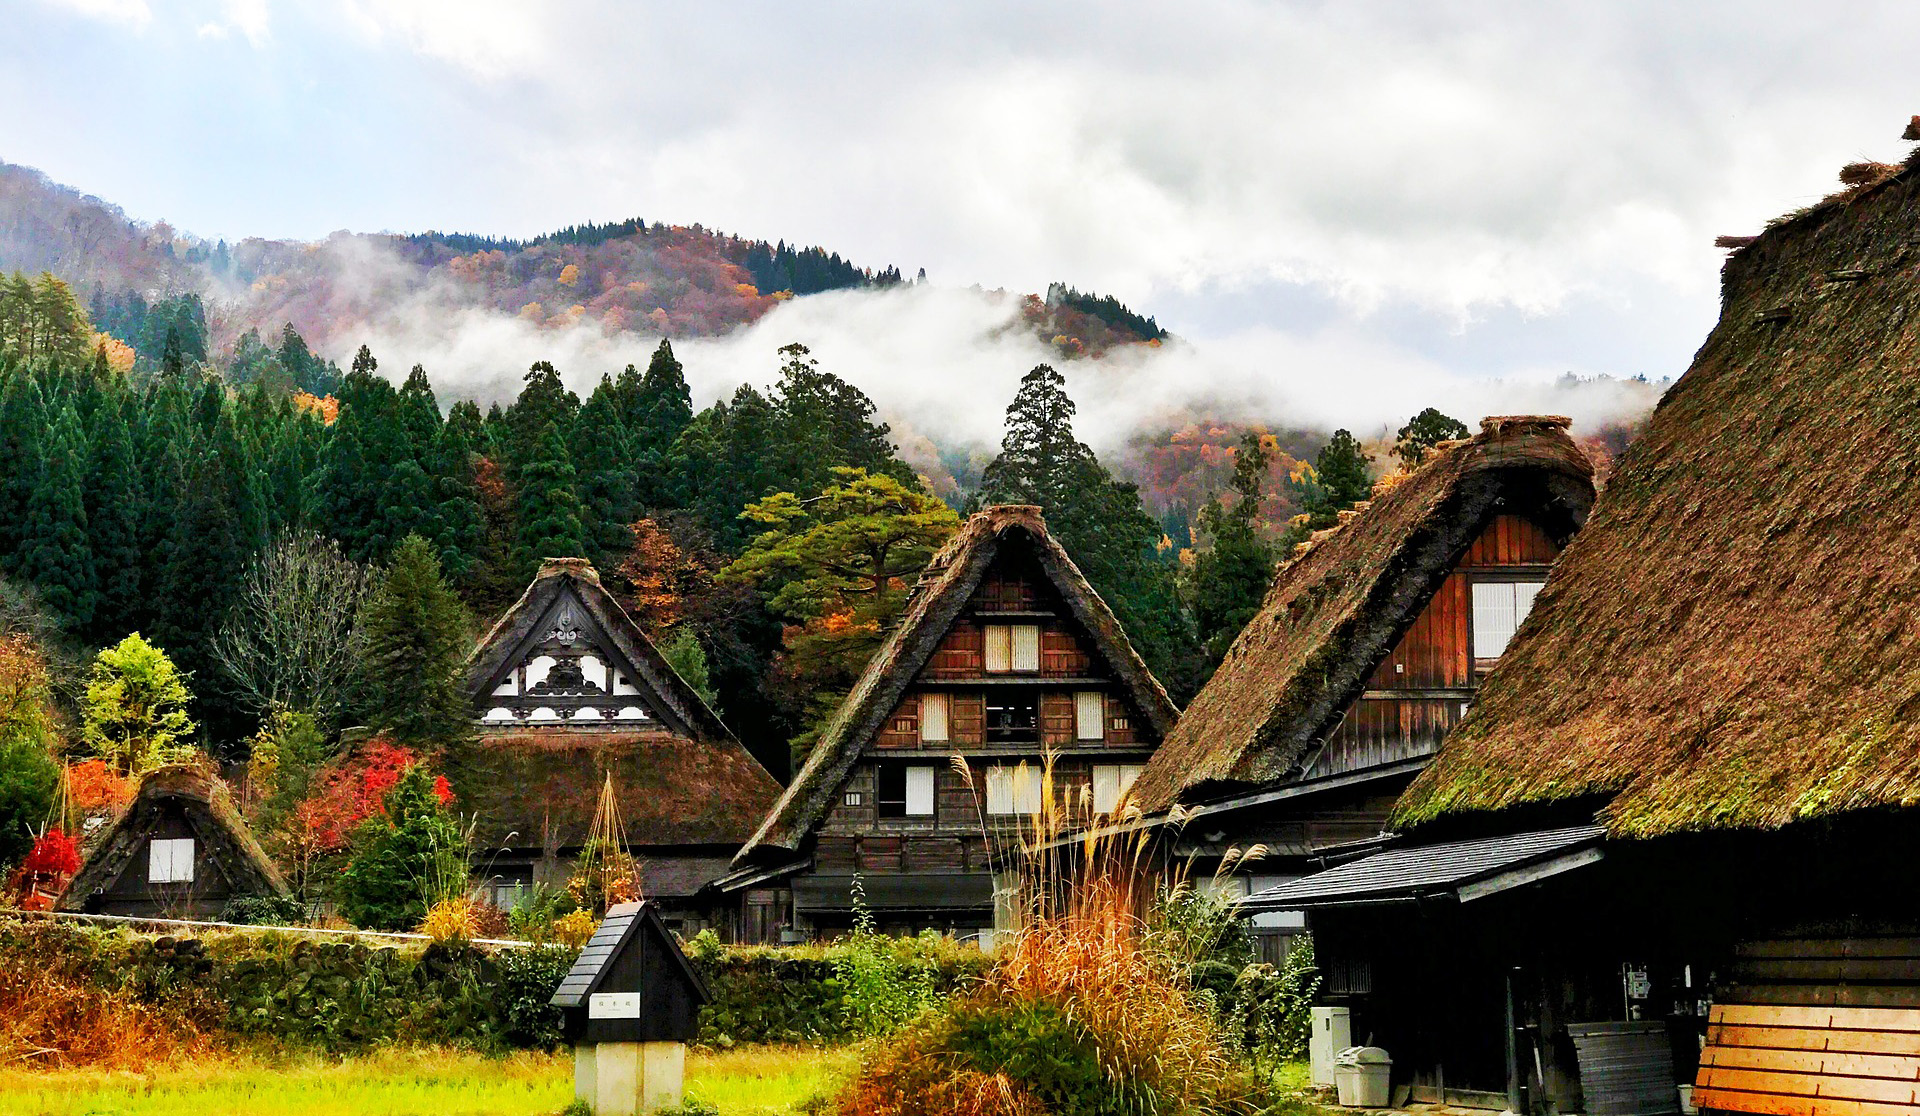 Shirakawago Japan heritage site